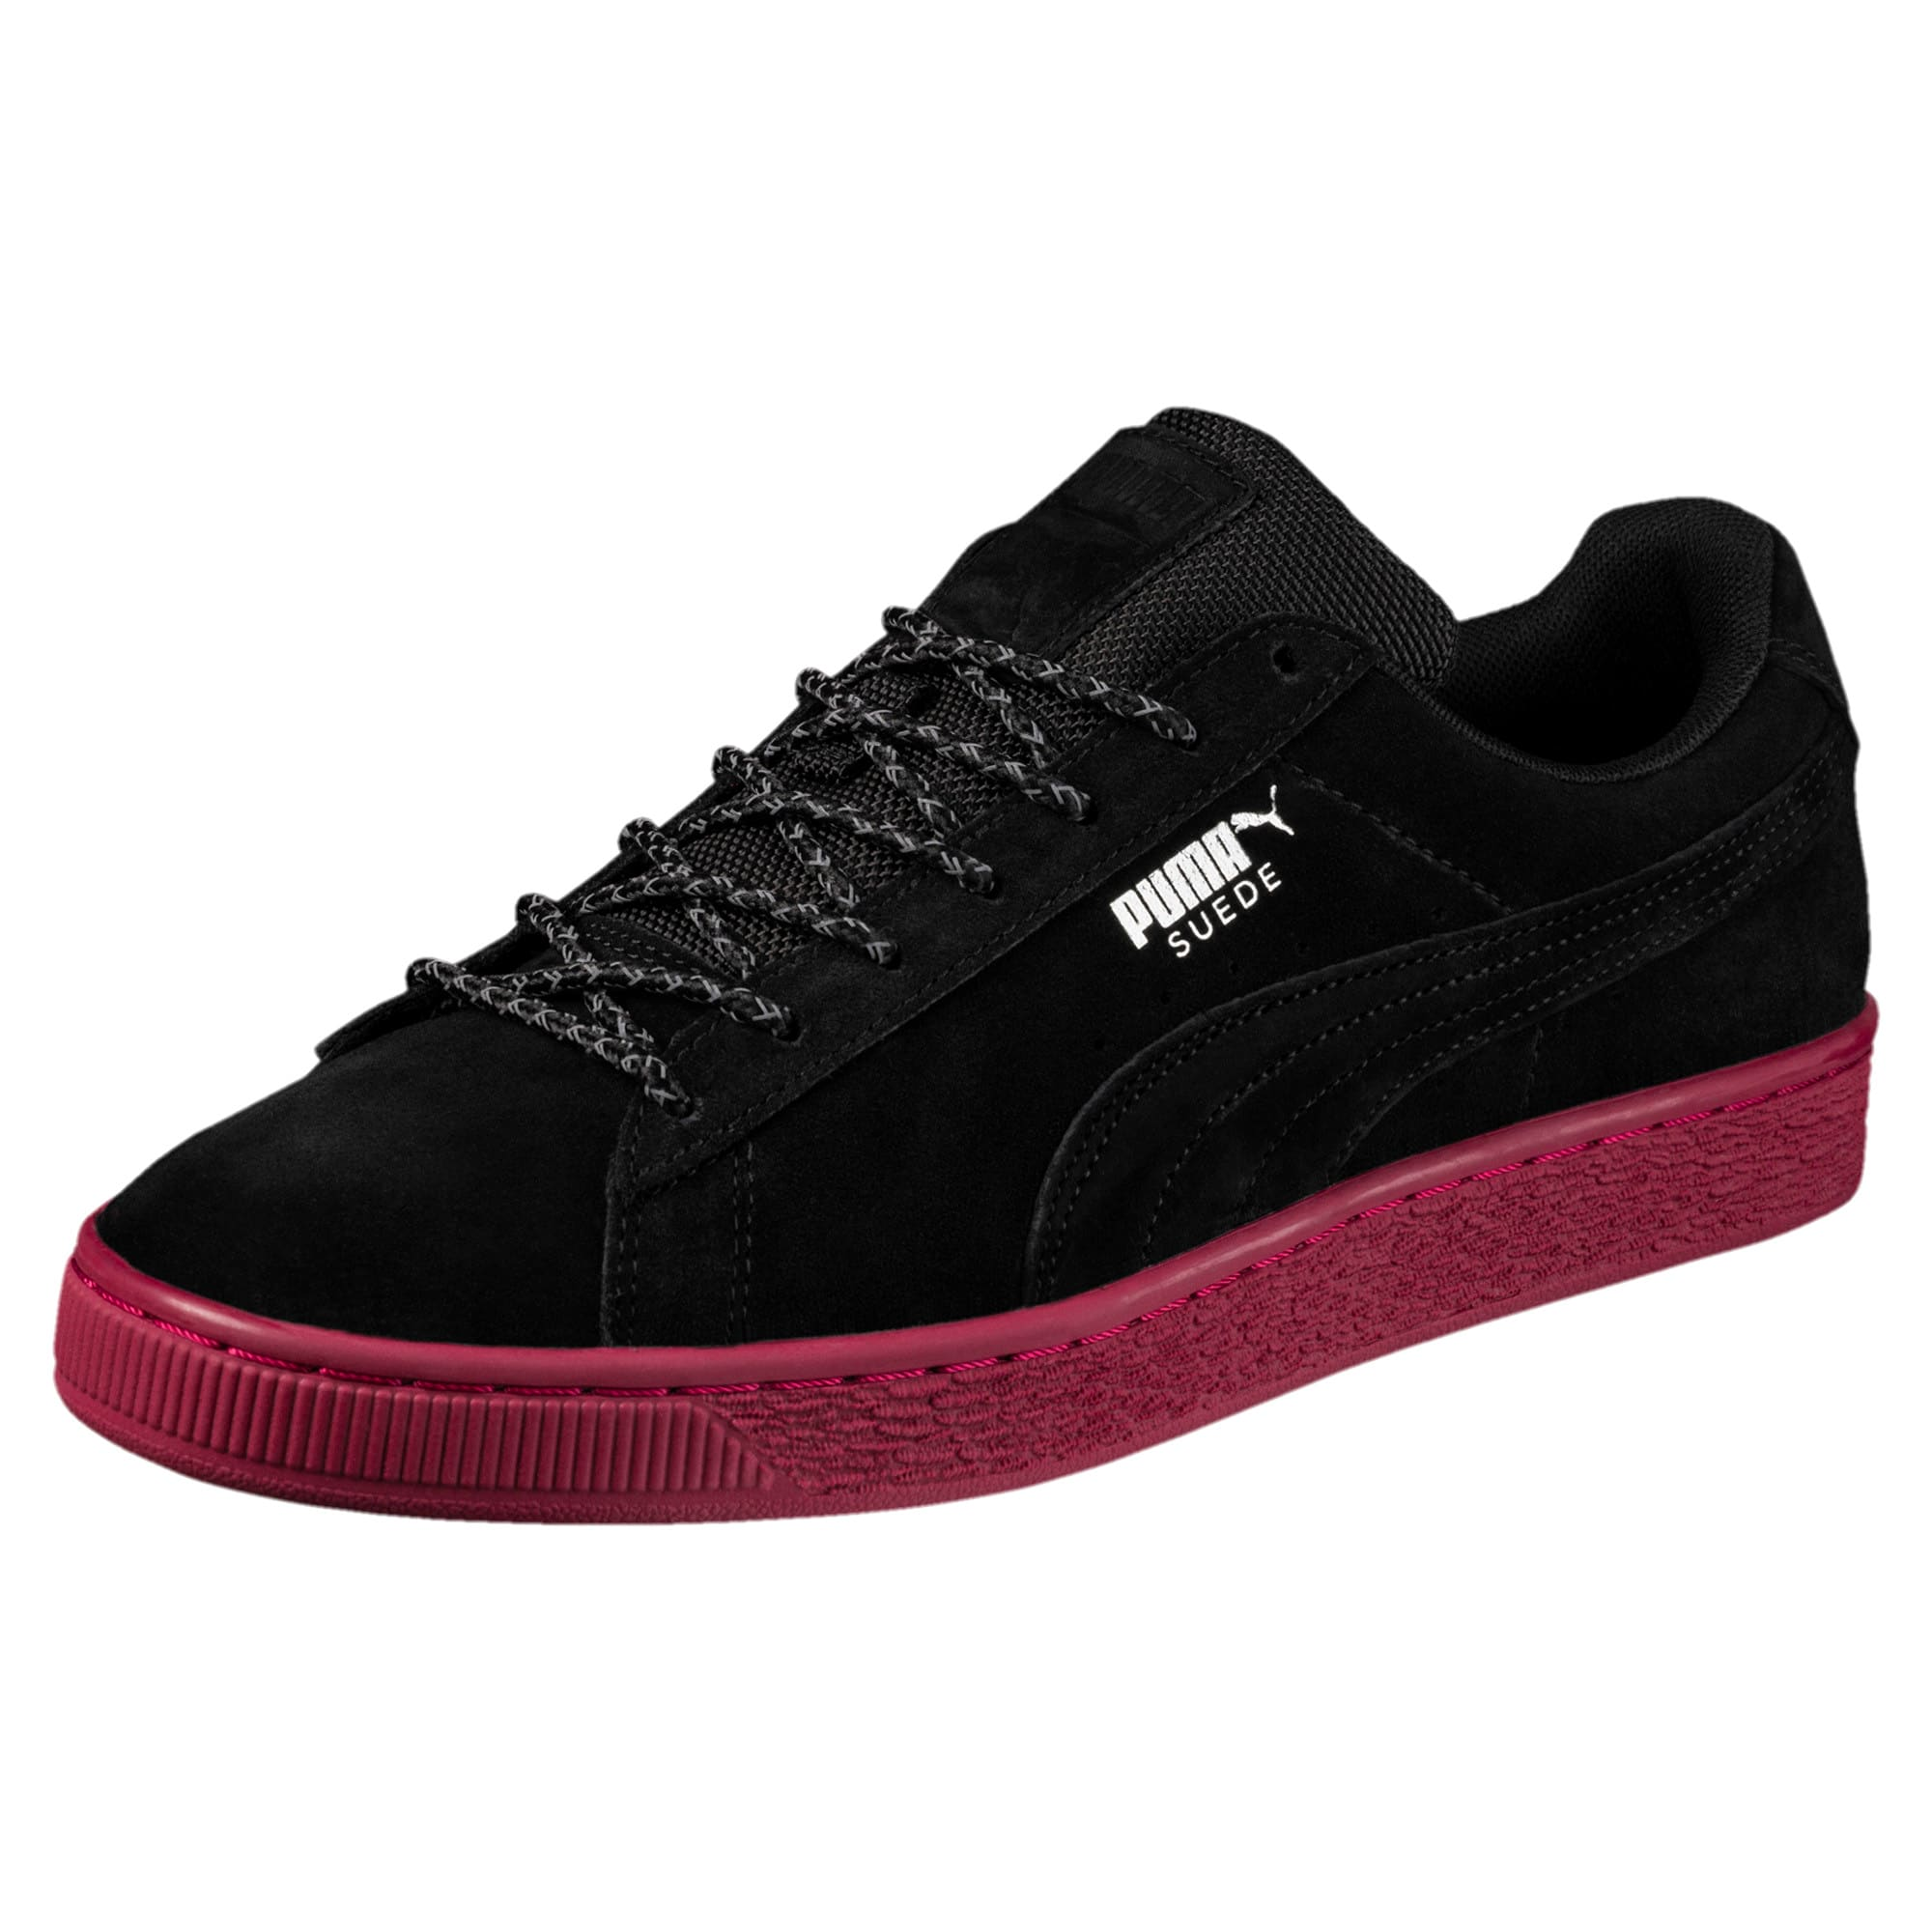 low priced d6dac 315e8 Suede Classic Weatherproof Sneakers